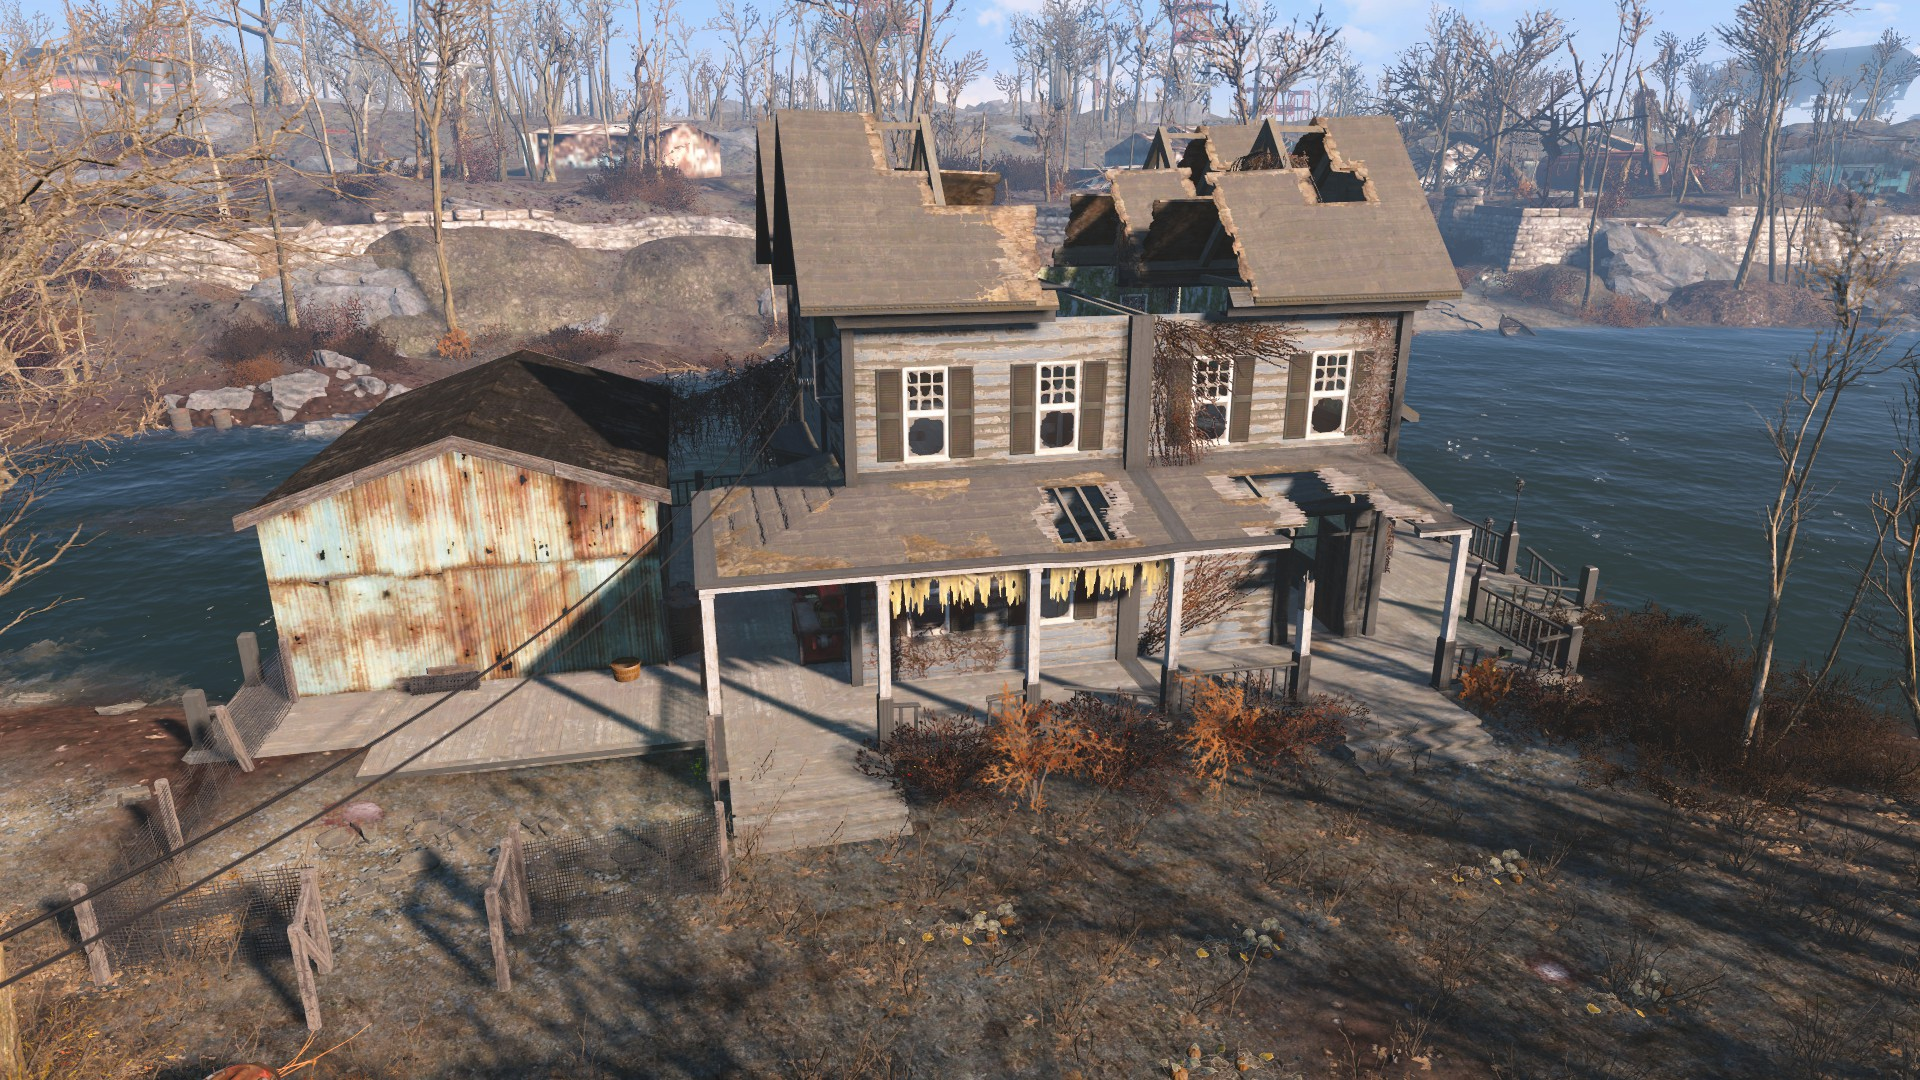 Taffington boathouse fallout wiki fandom powered by wikia for Best house designs fallout 4